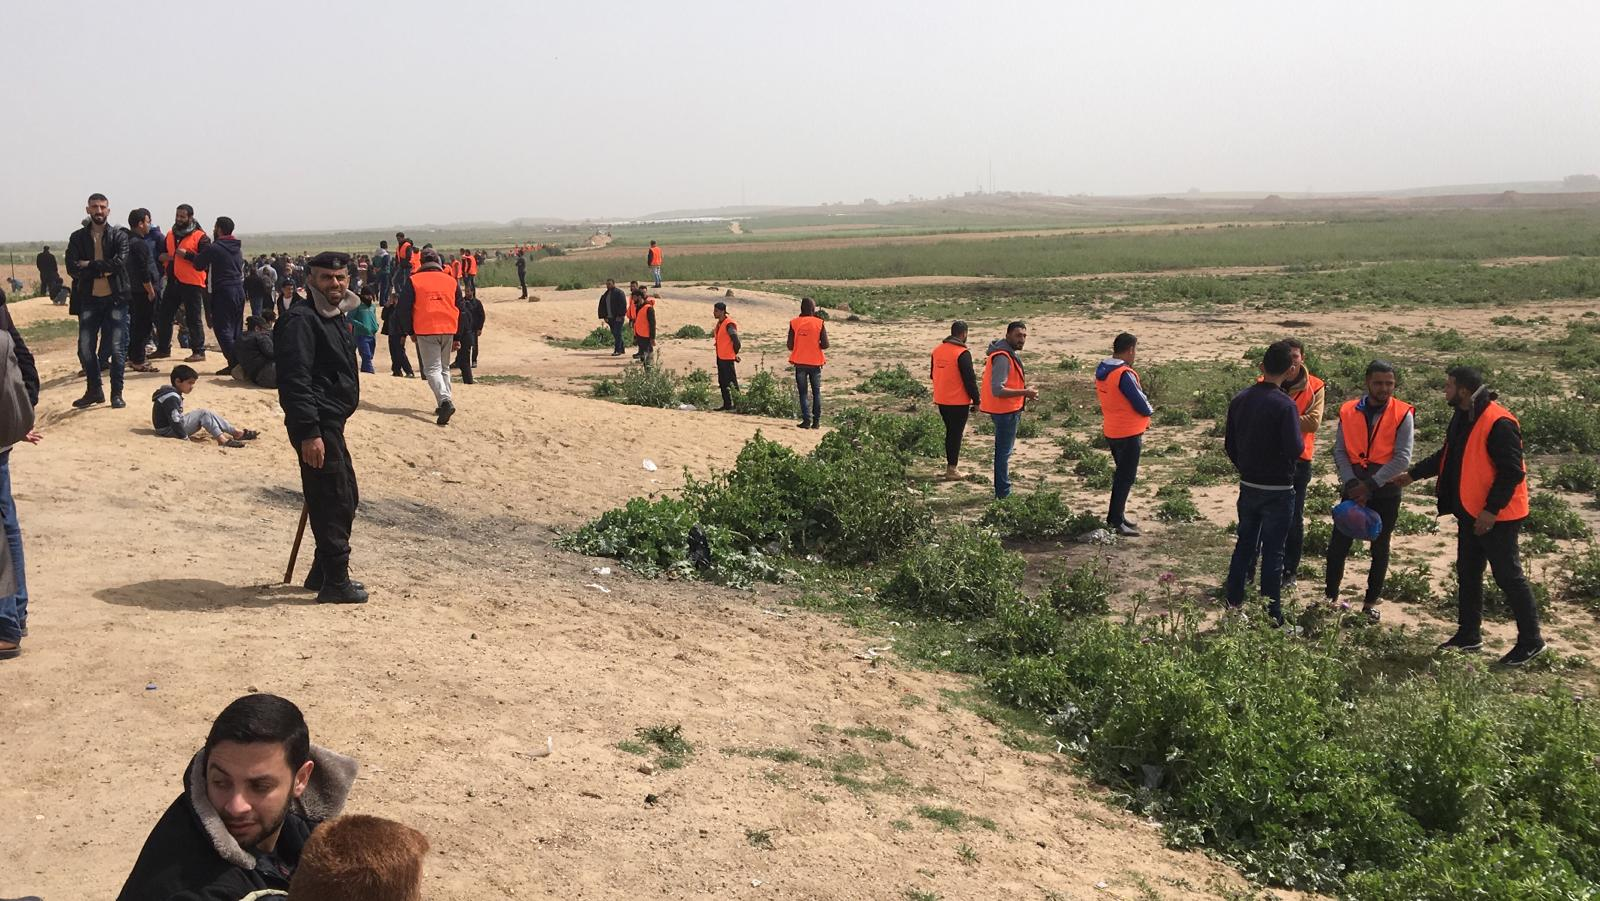 Hamas crowd control marshals in Jabalya.